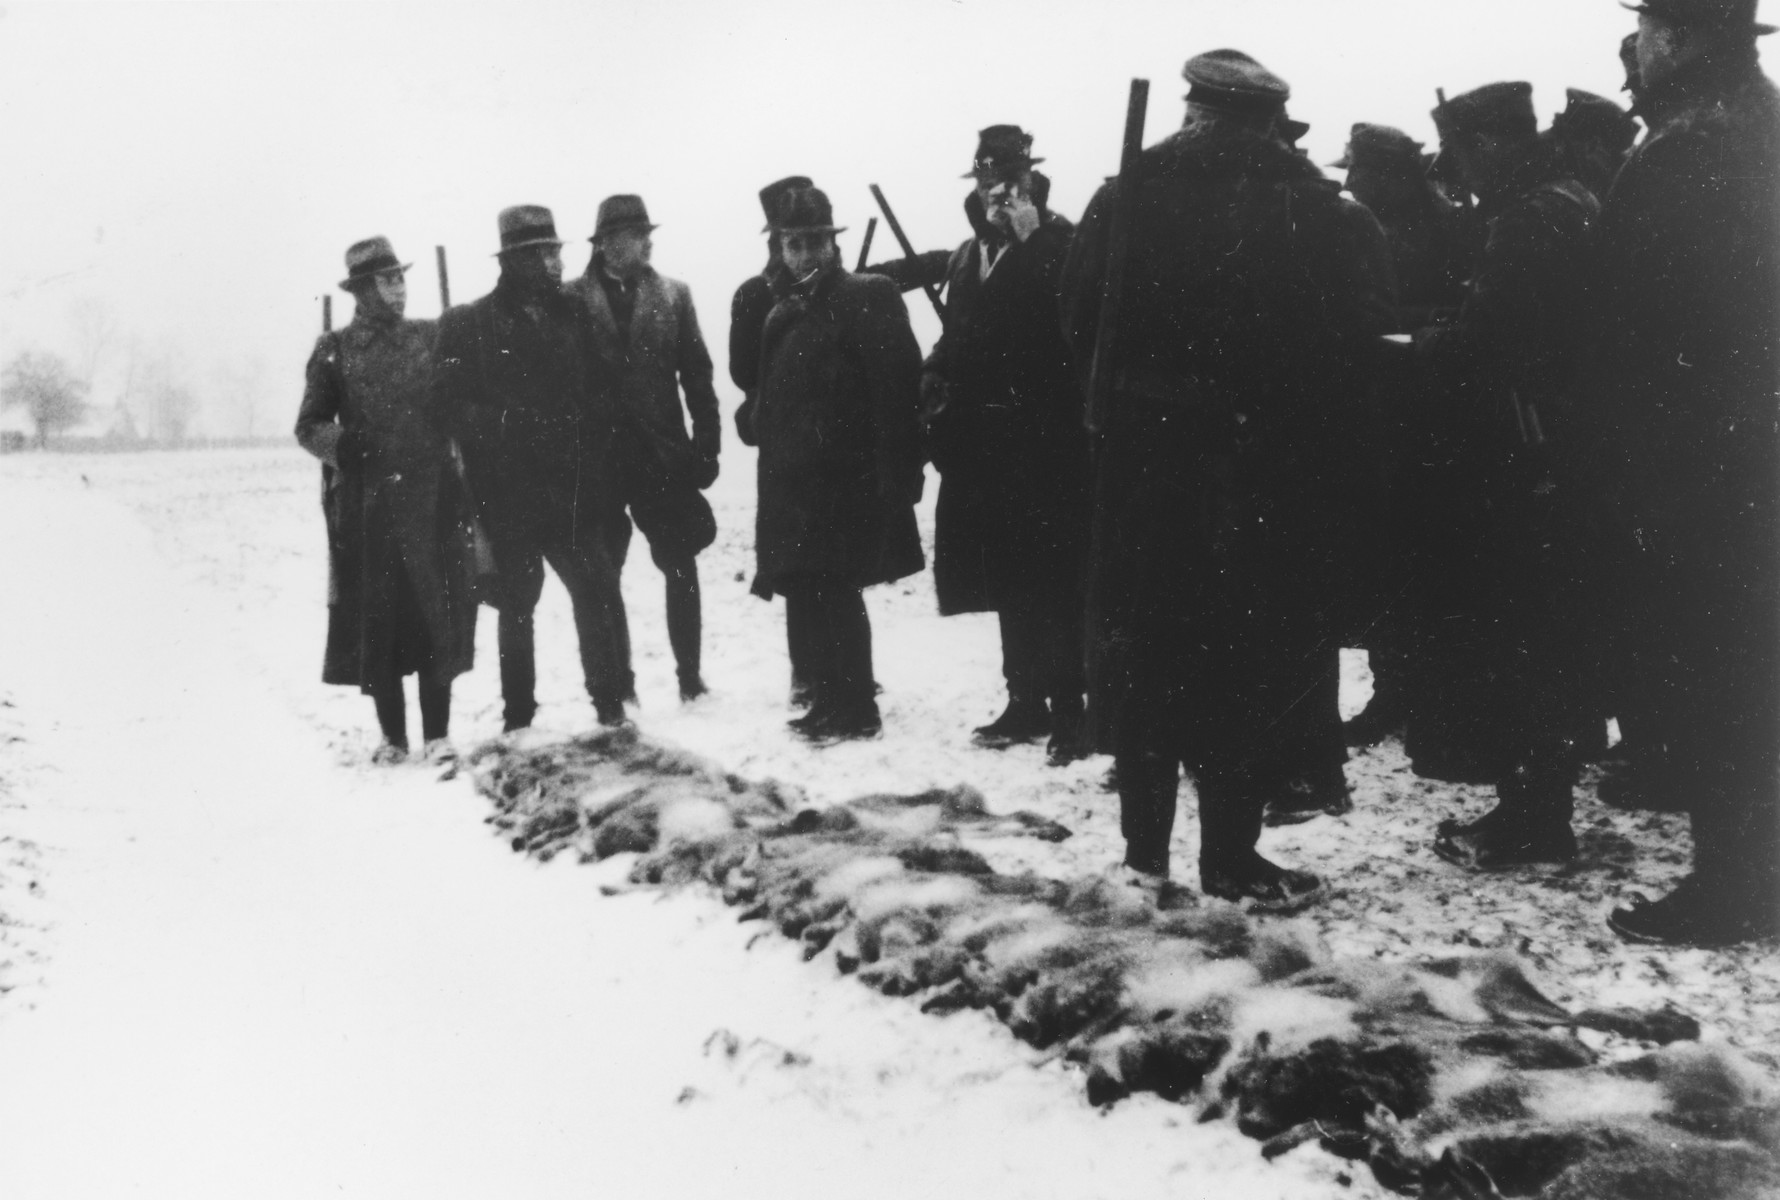 """Several SS officers stand with their shotguns during a winter hunting excursion.    The original caption reads """"Treibjagd bei Schnee"""" (going hunting in the snow).   Karl Hoecker is on the far left and Karl Moeckel is third from the left."""